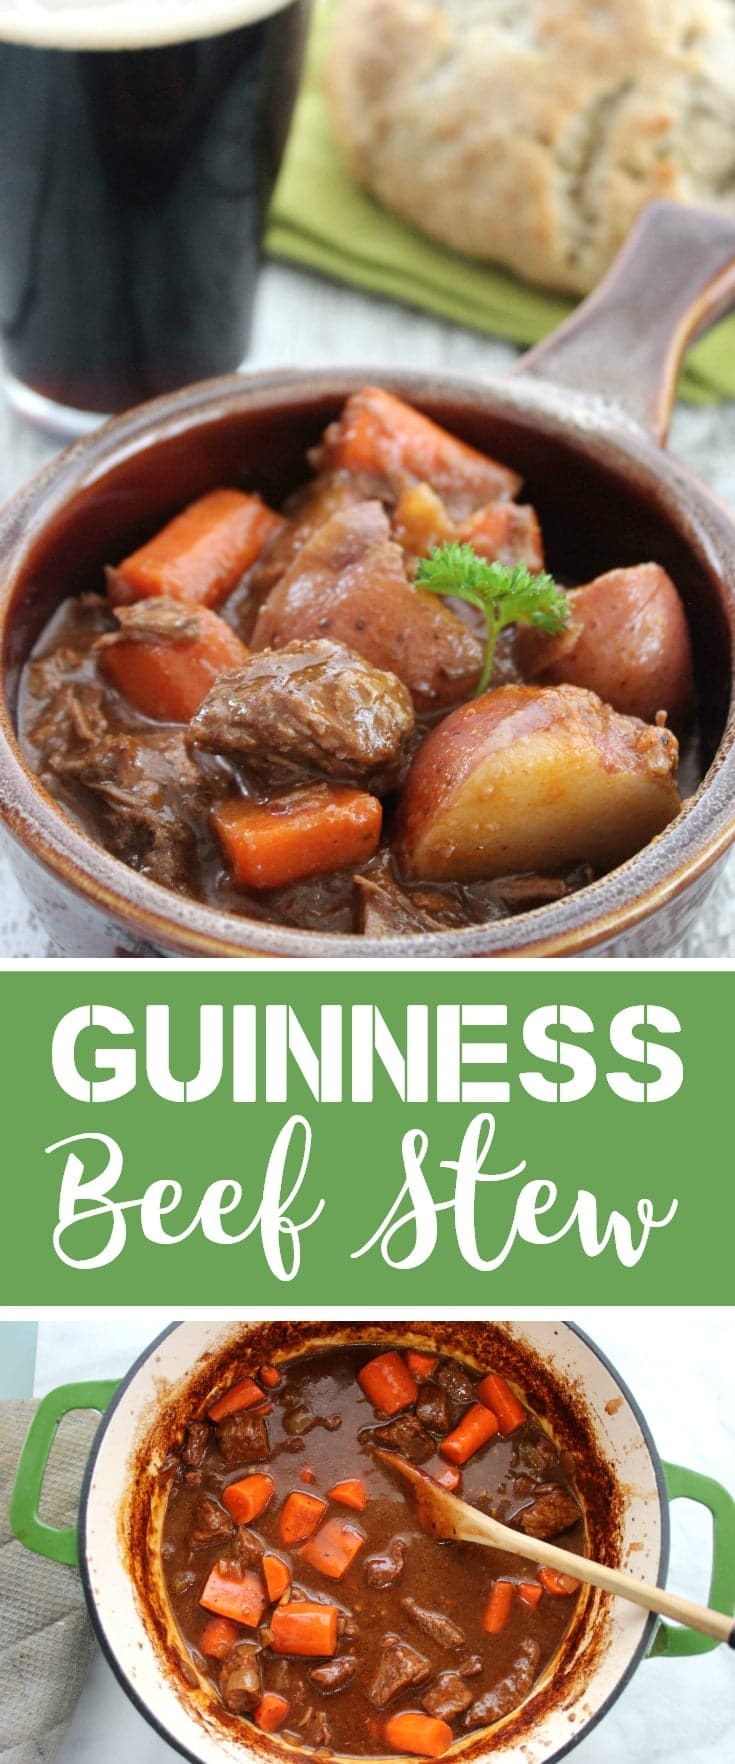 Guinness beef stew recipe st. patrick's day